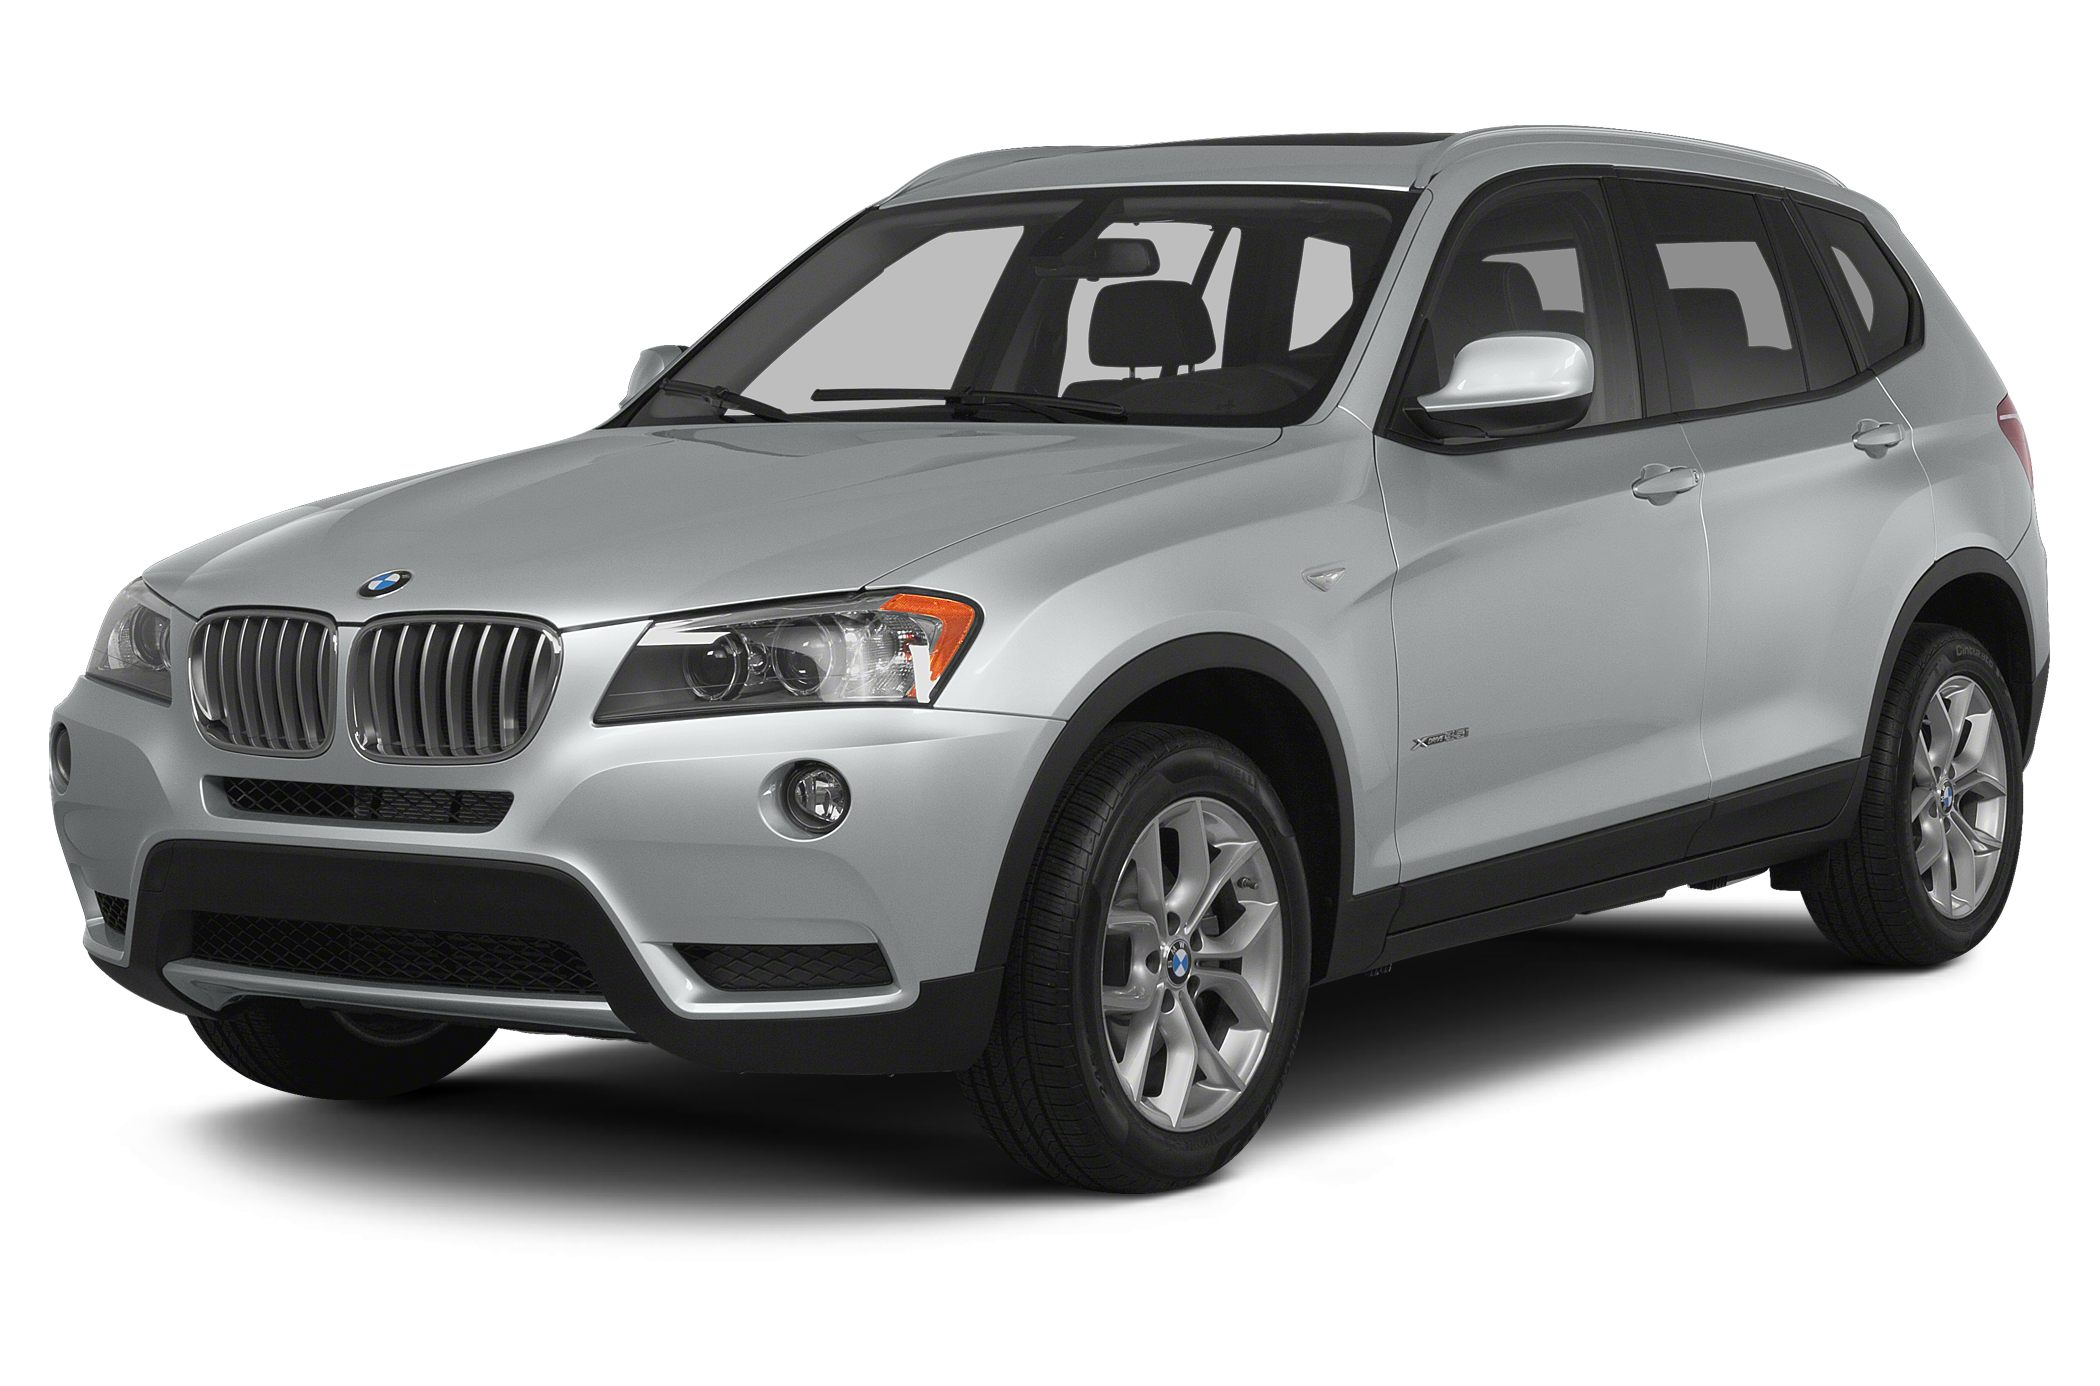 2014 BMW X3 XDrive35i SUV for sale in Tucson for $43,991 with 8,556 miles